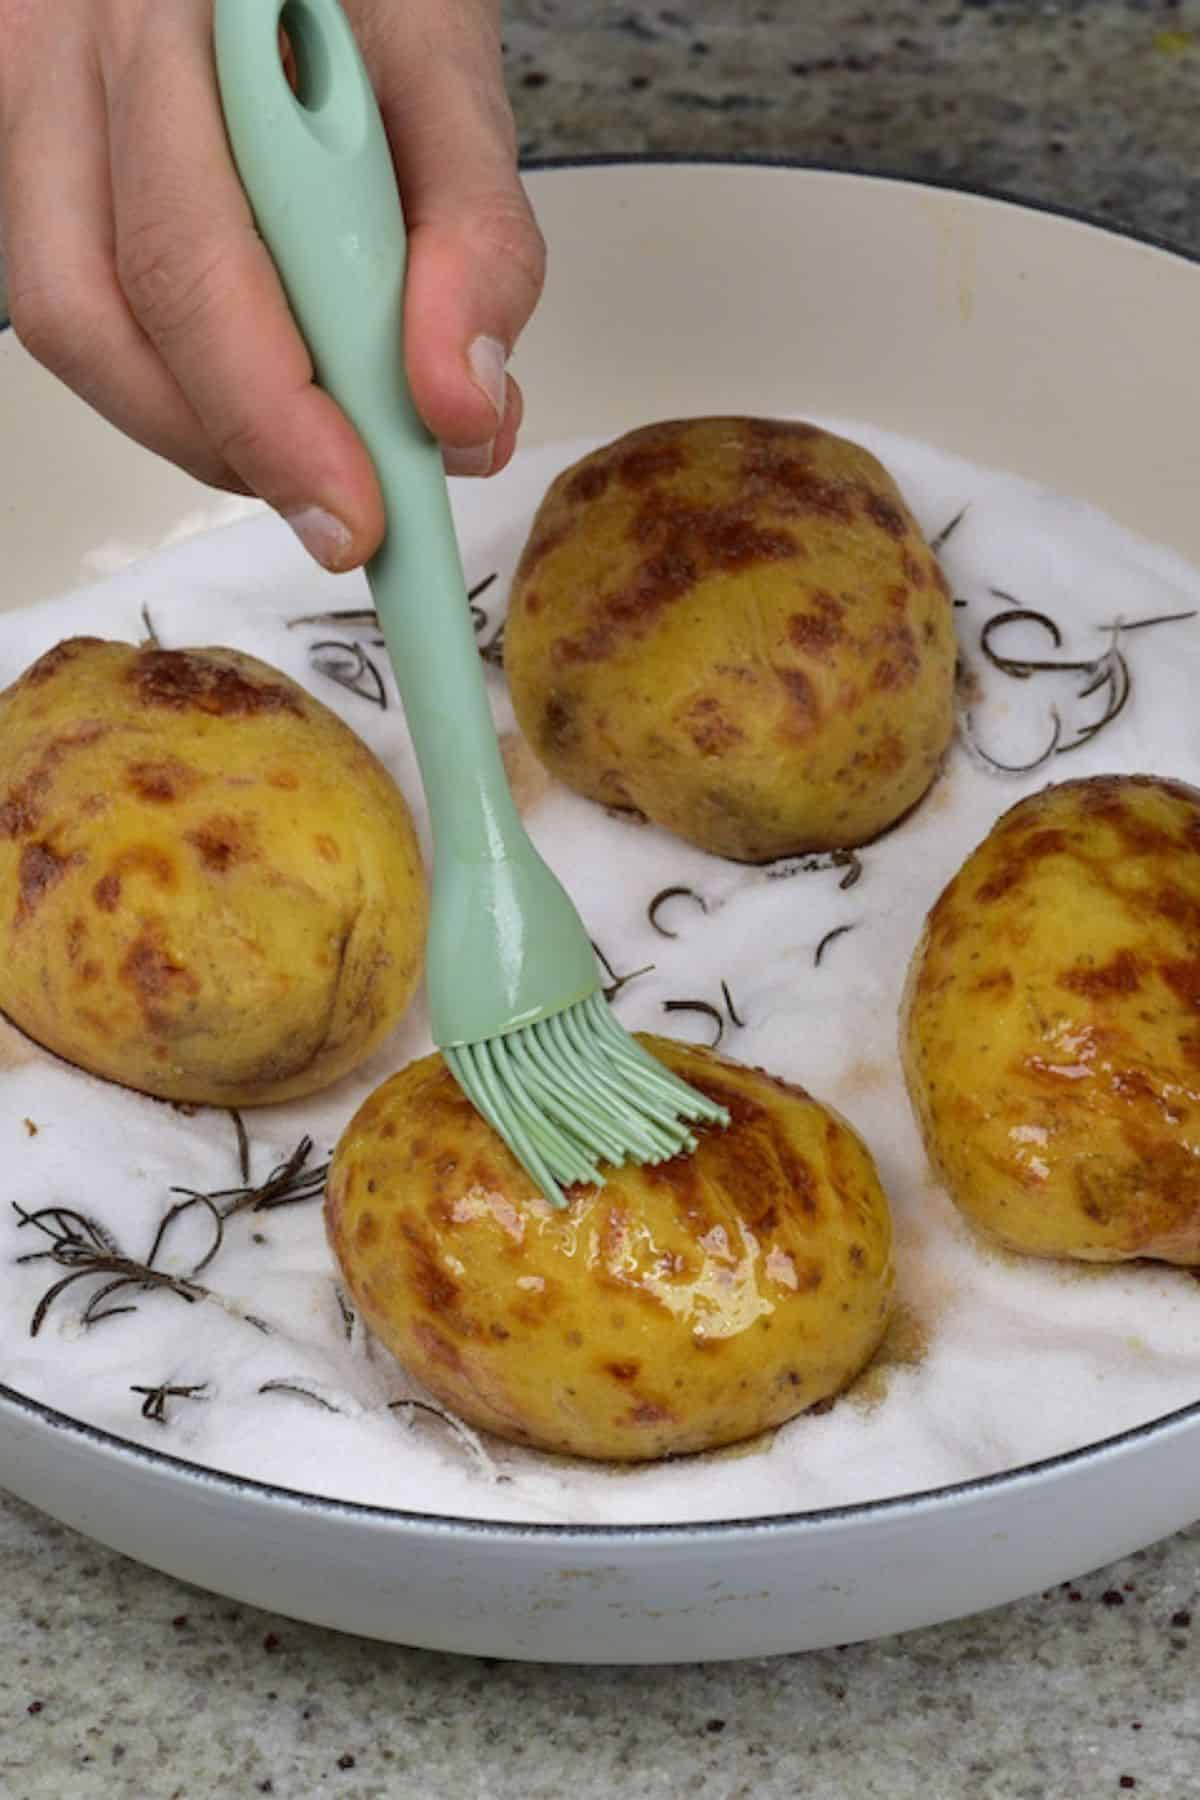 Brushing baked potato with oil